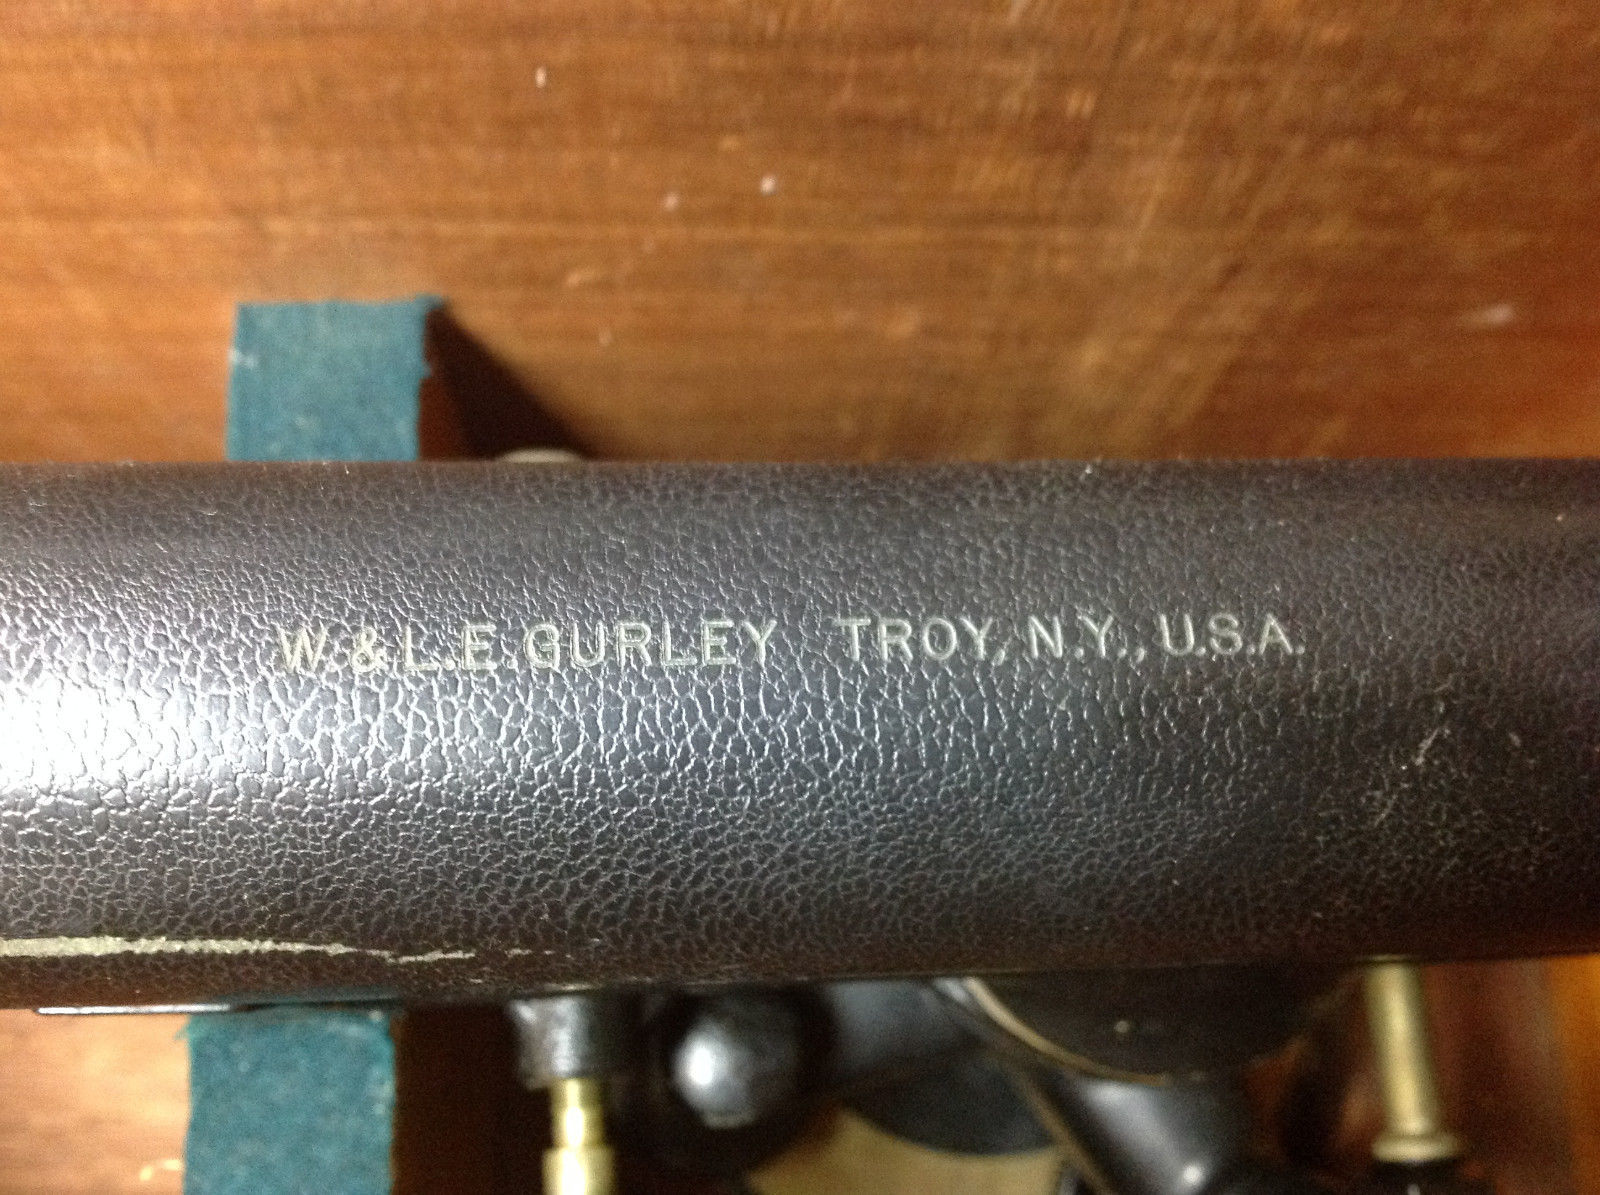 W & L.E. GURLEY TROY NY Level surveyor's transit